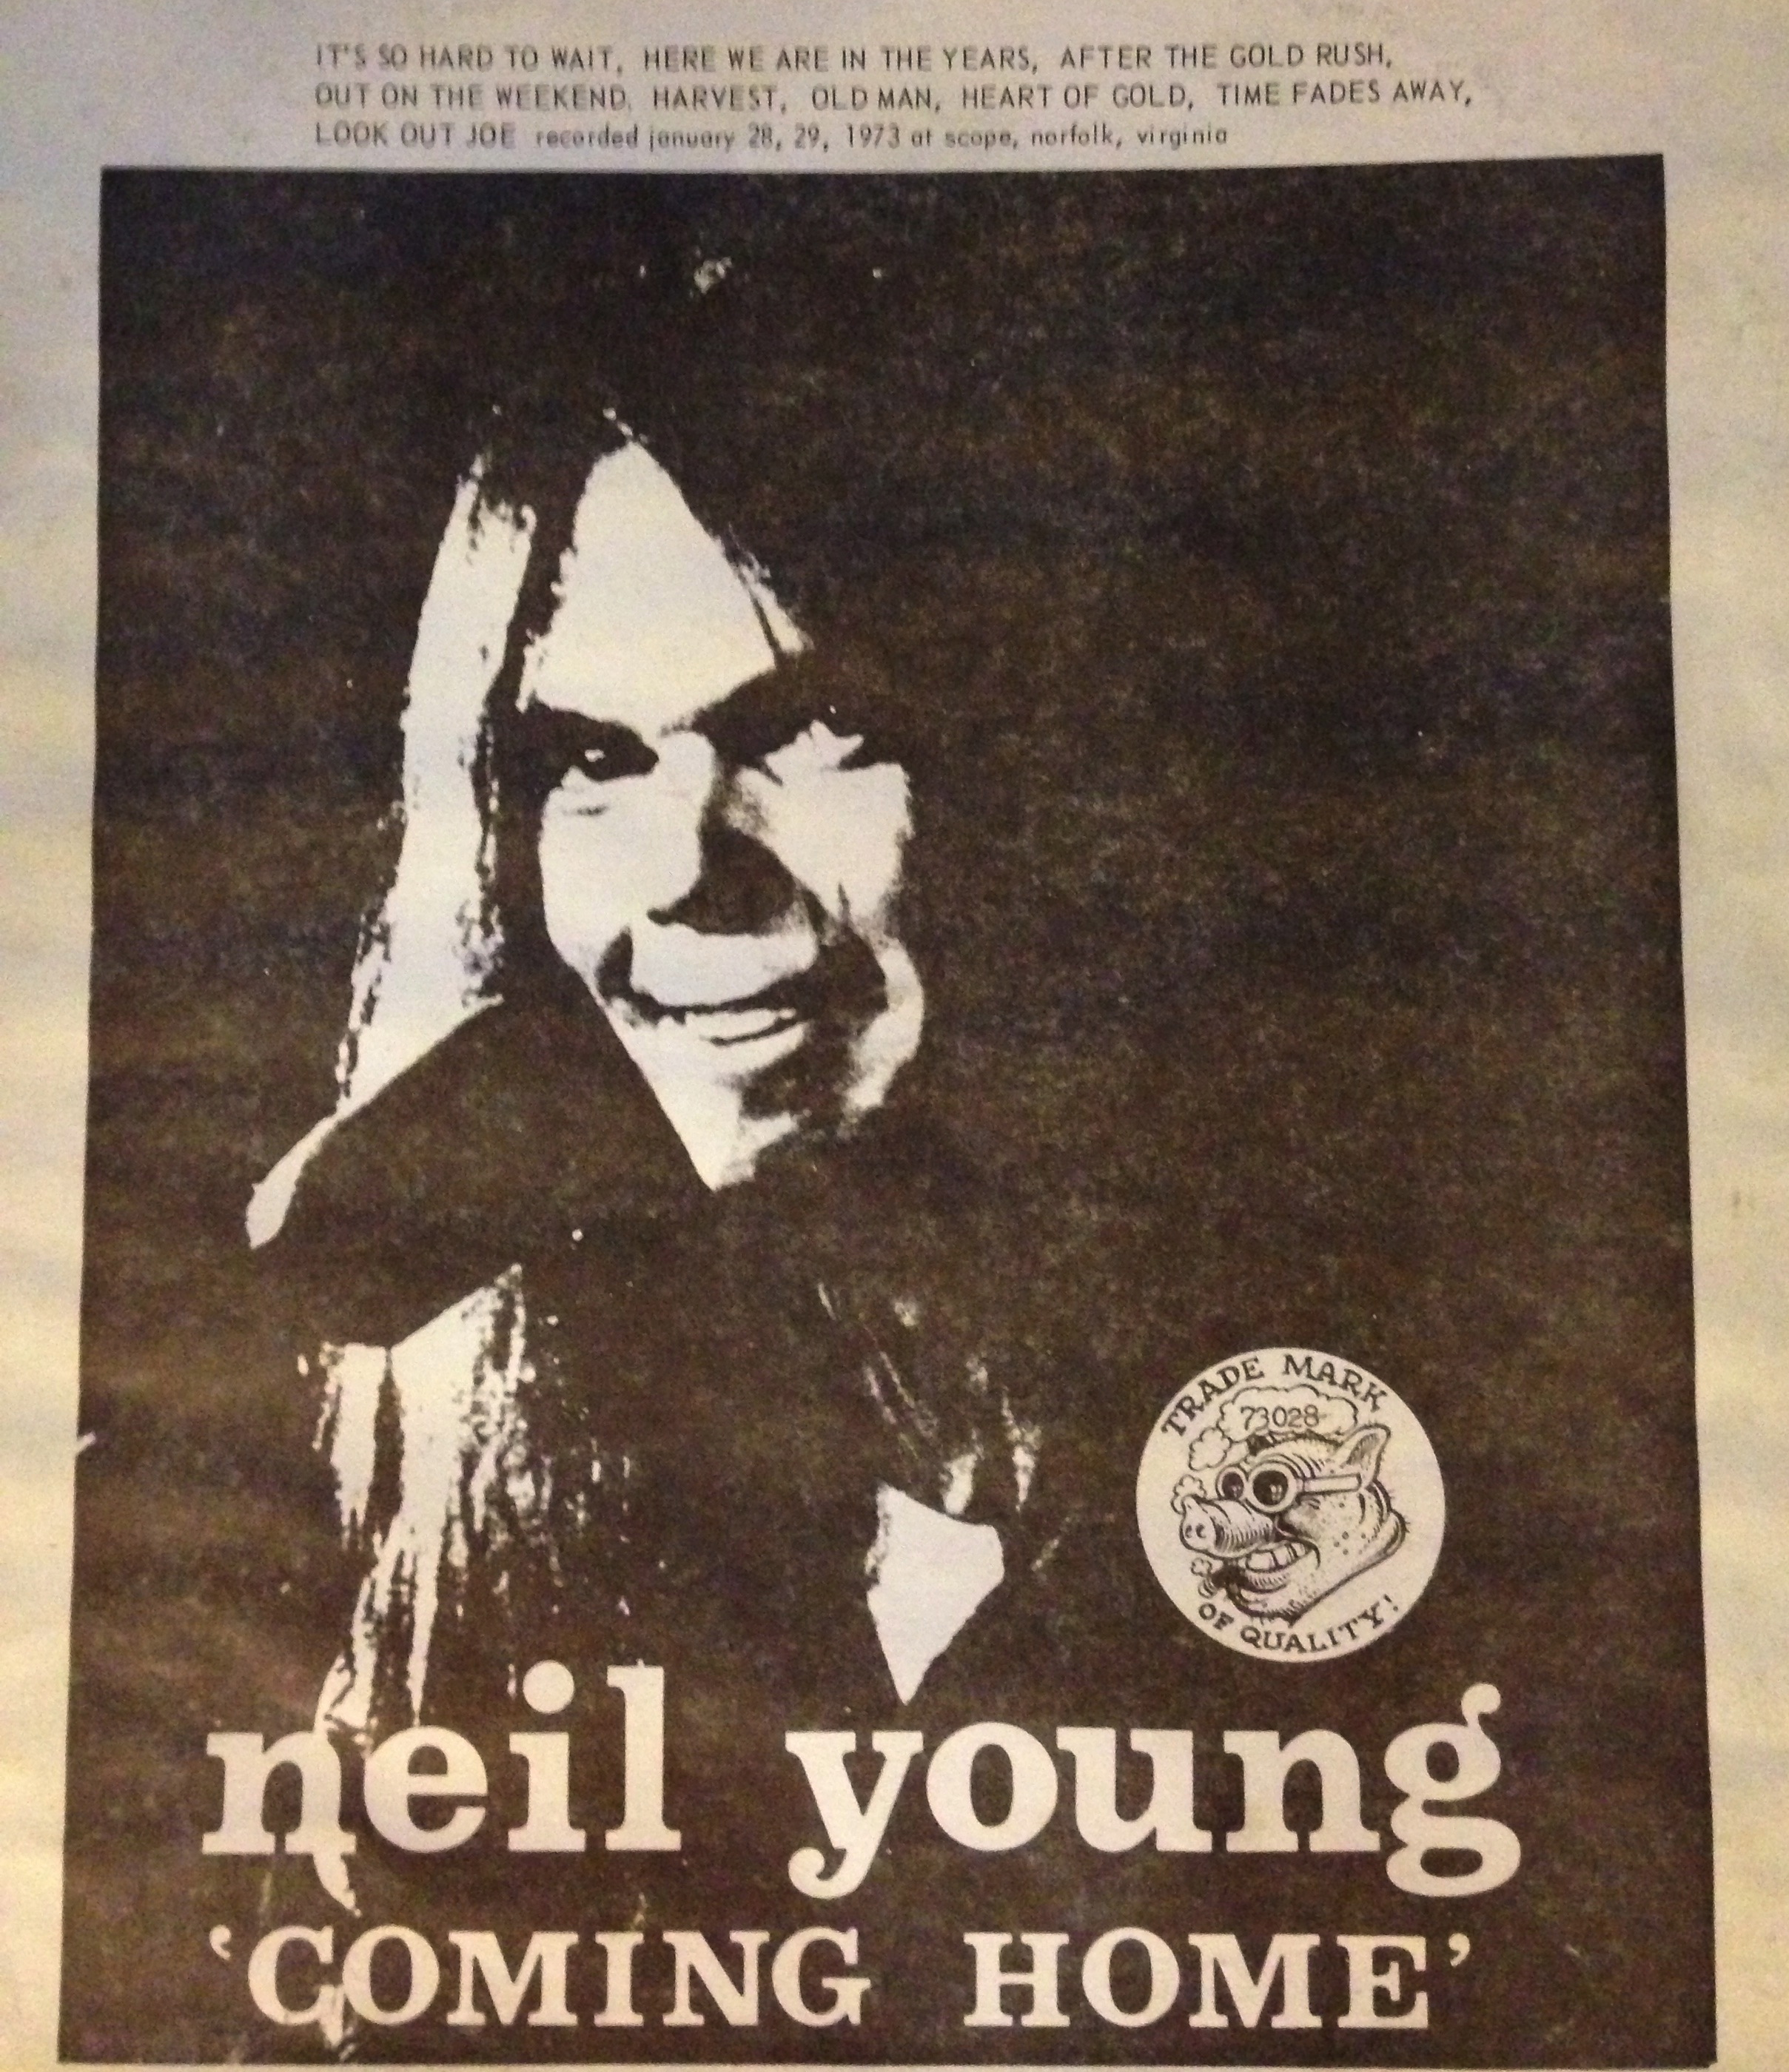 Neil Young Boots Neil Young Coming Home